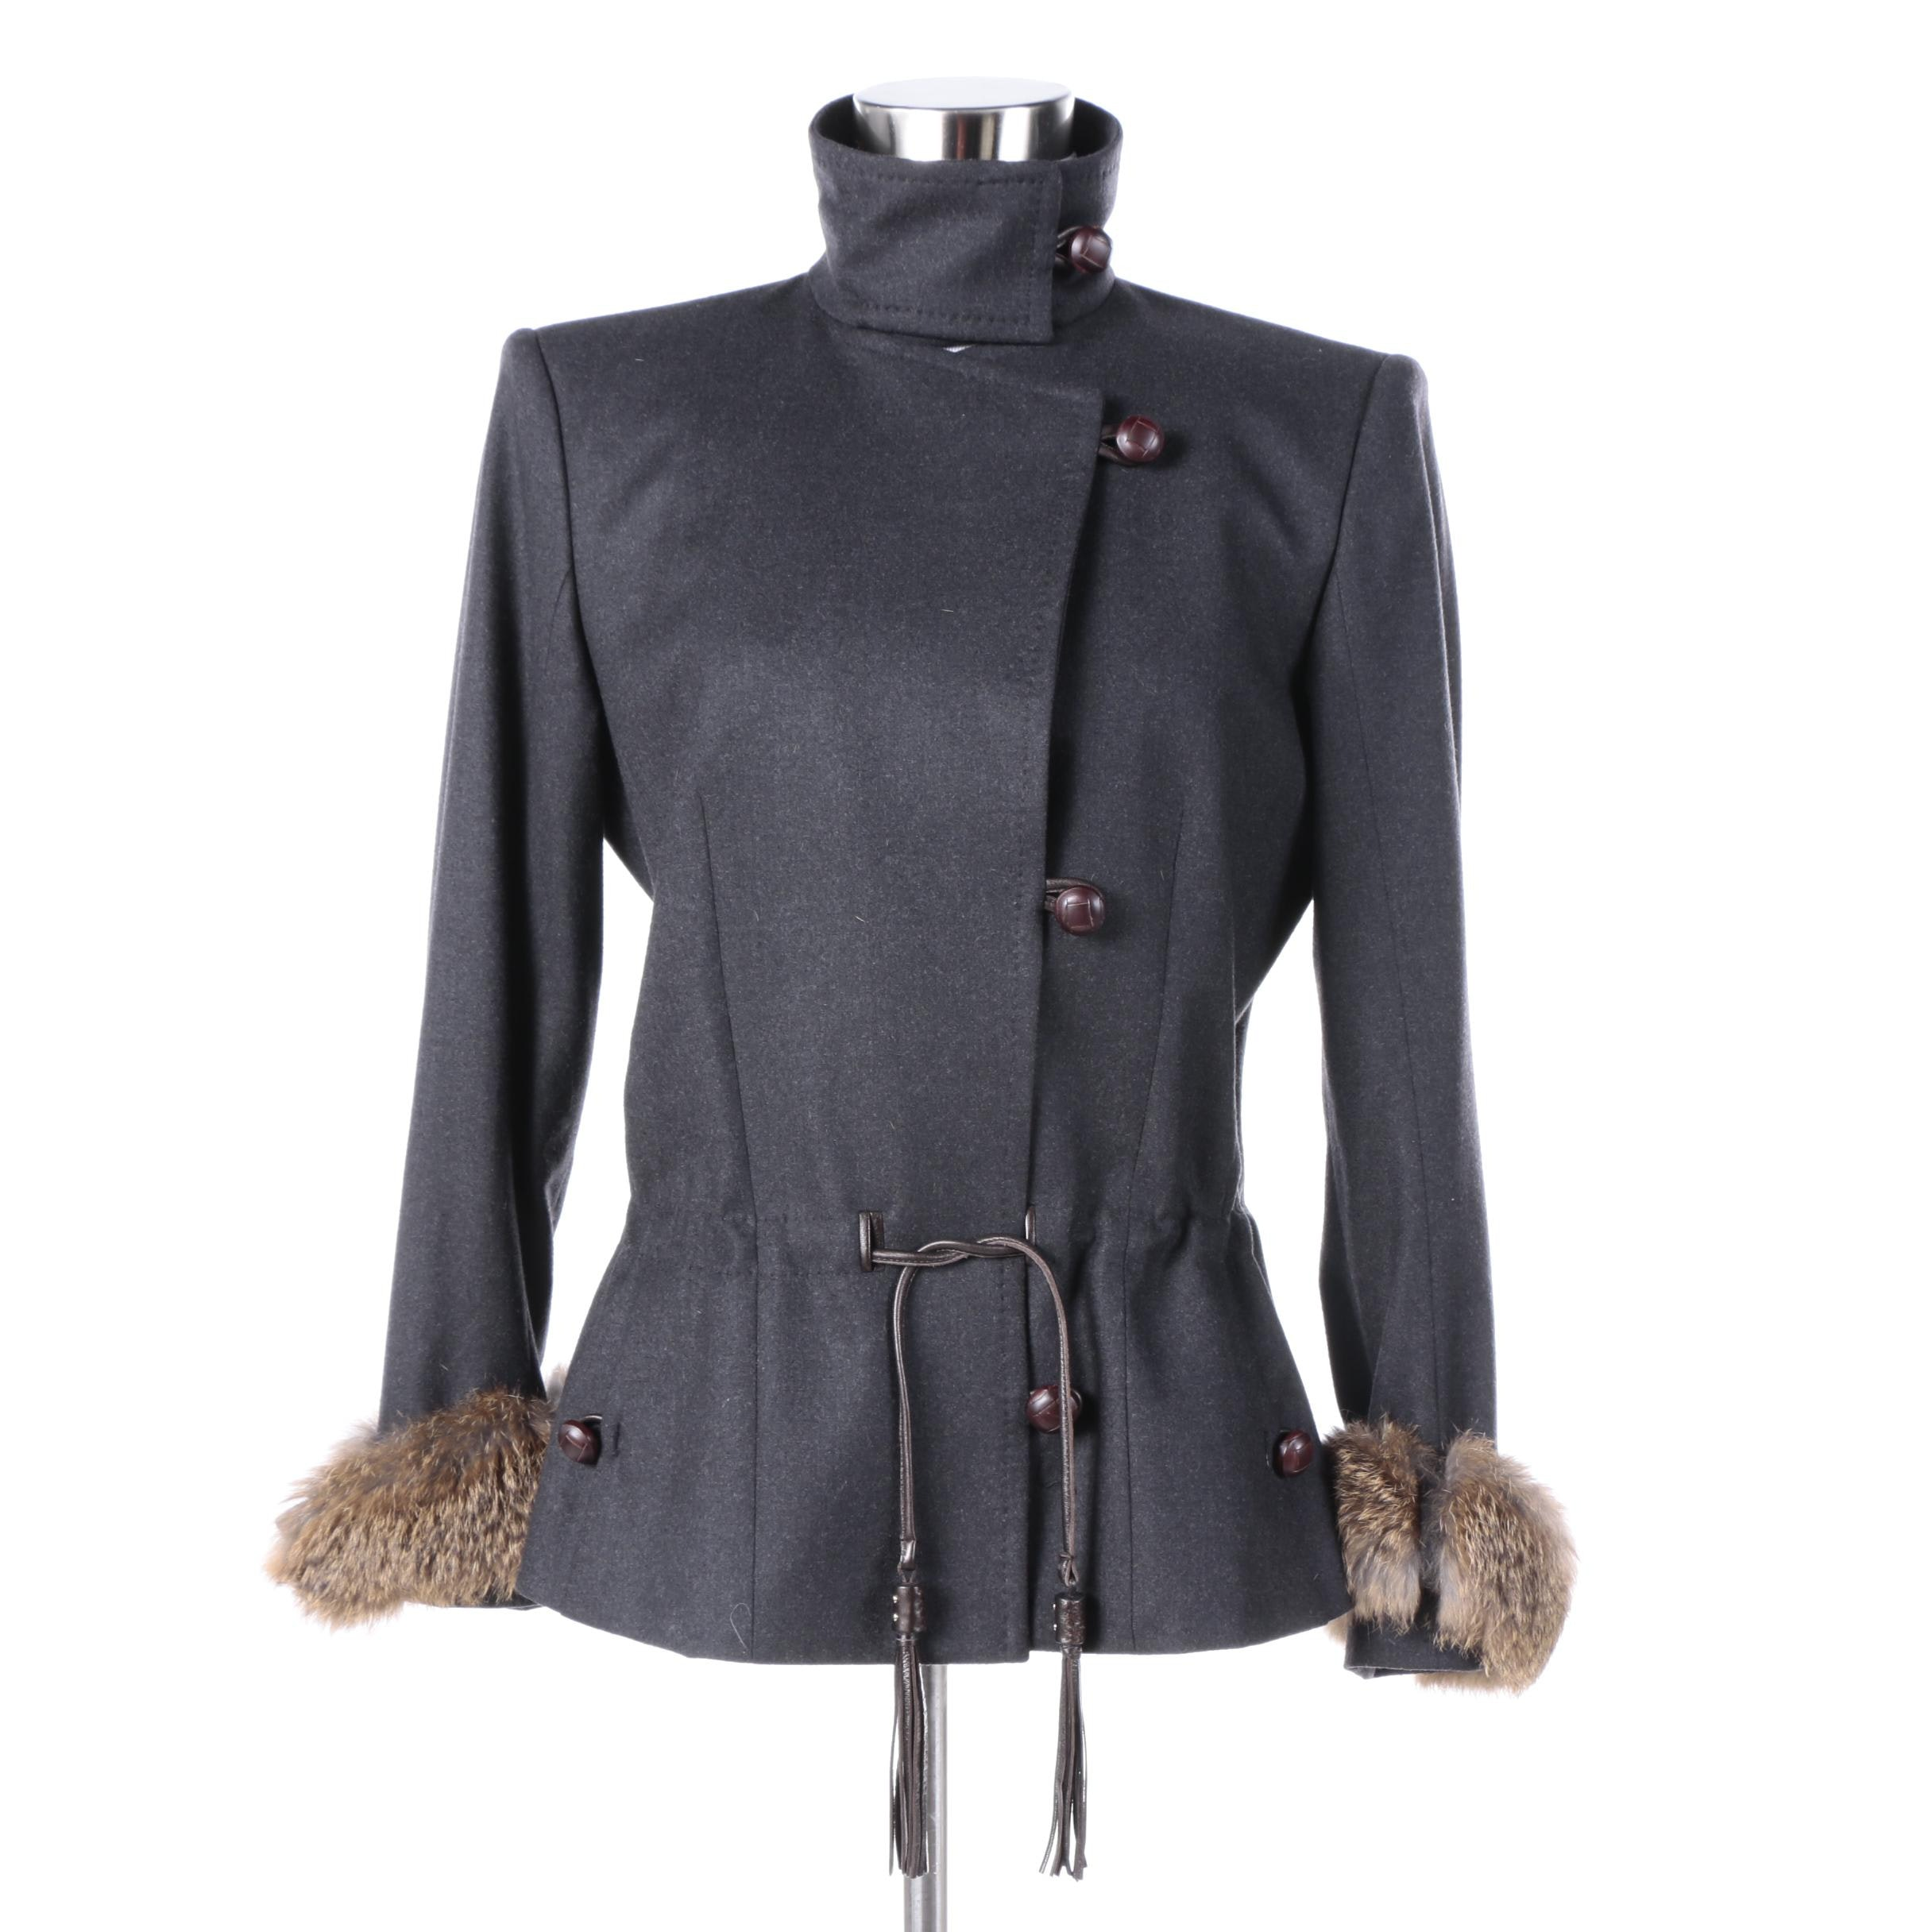 Women's Yves Saint Laurent Wool Blend Jacket with Rabbit Fur Cuffs